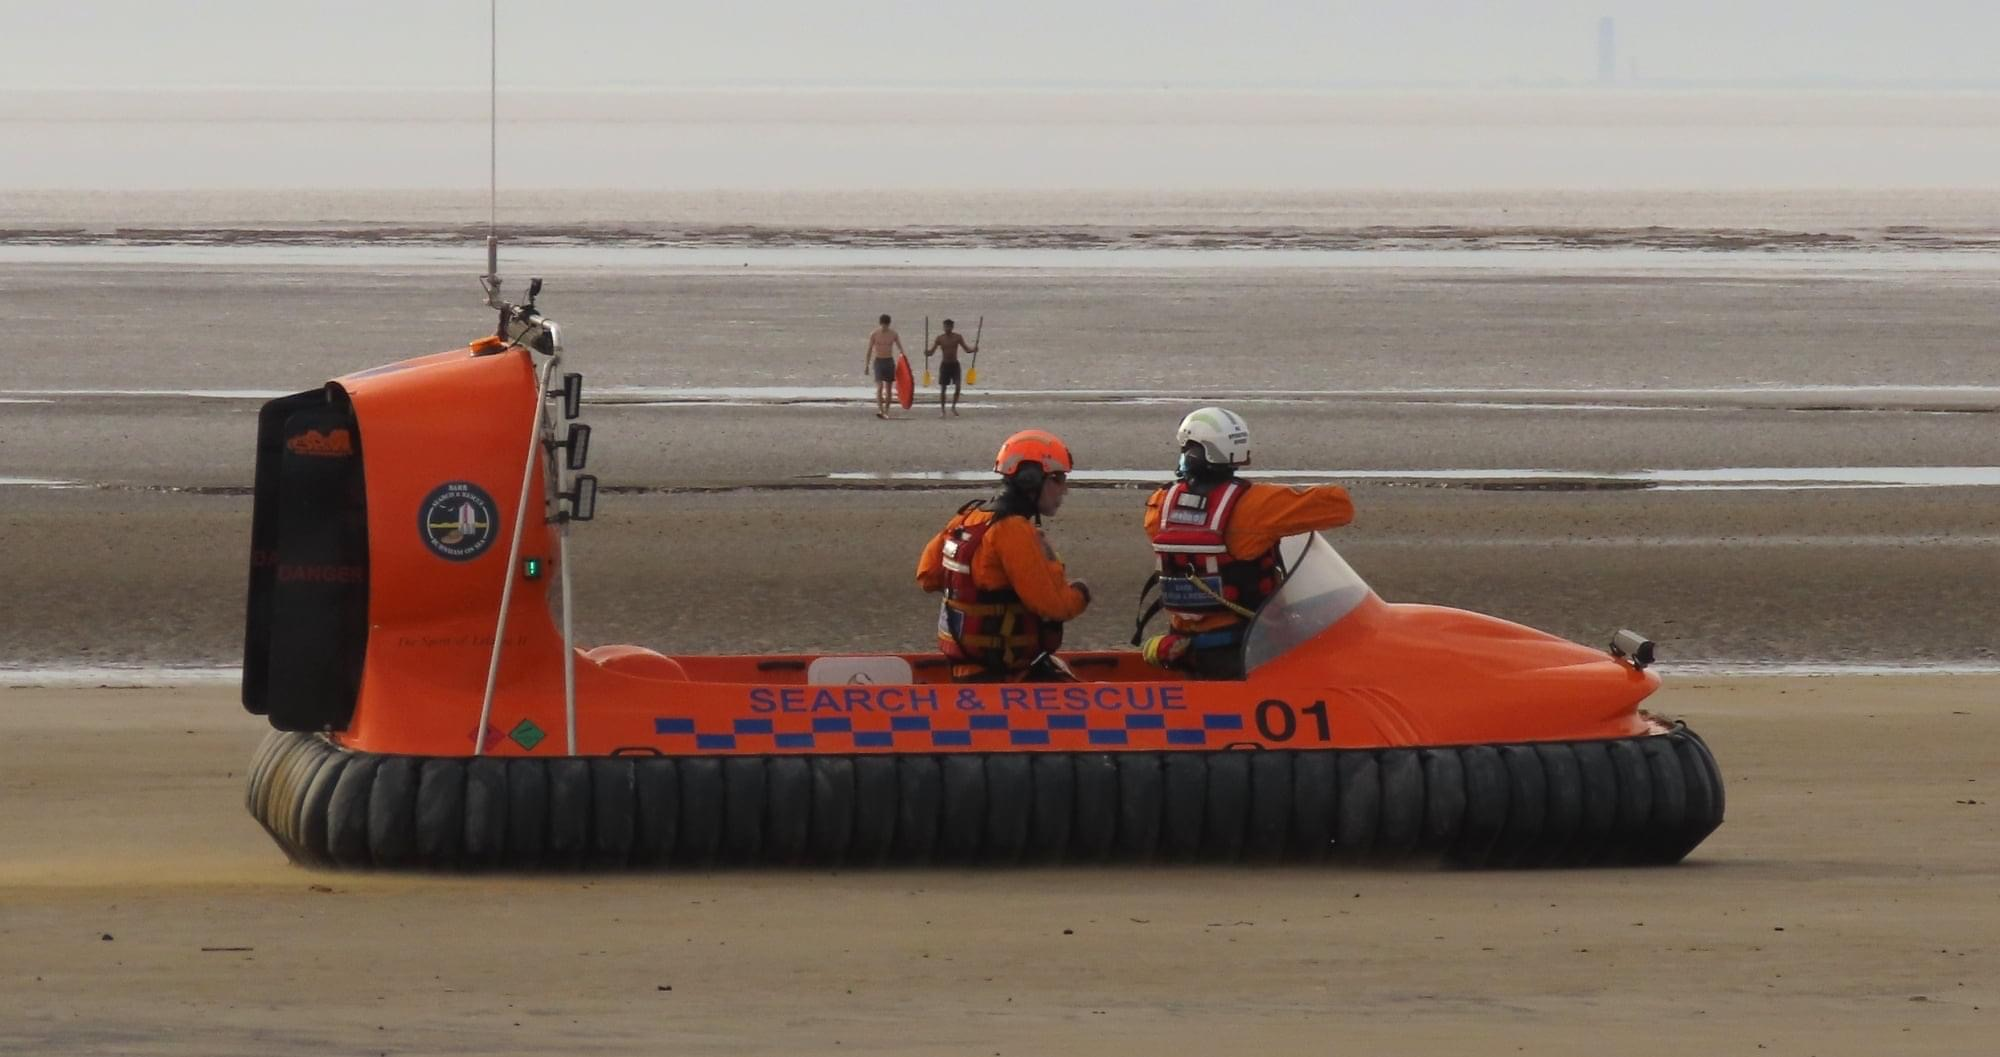 #05 – TWO PERSONS ATTEMPTING TO REACH THE SEA – 30/03/2021